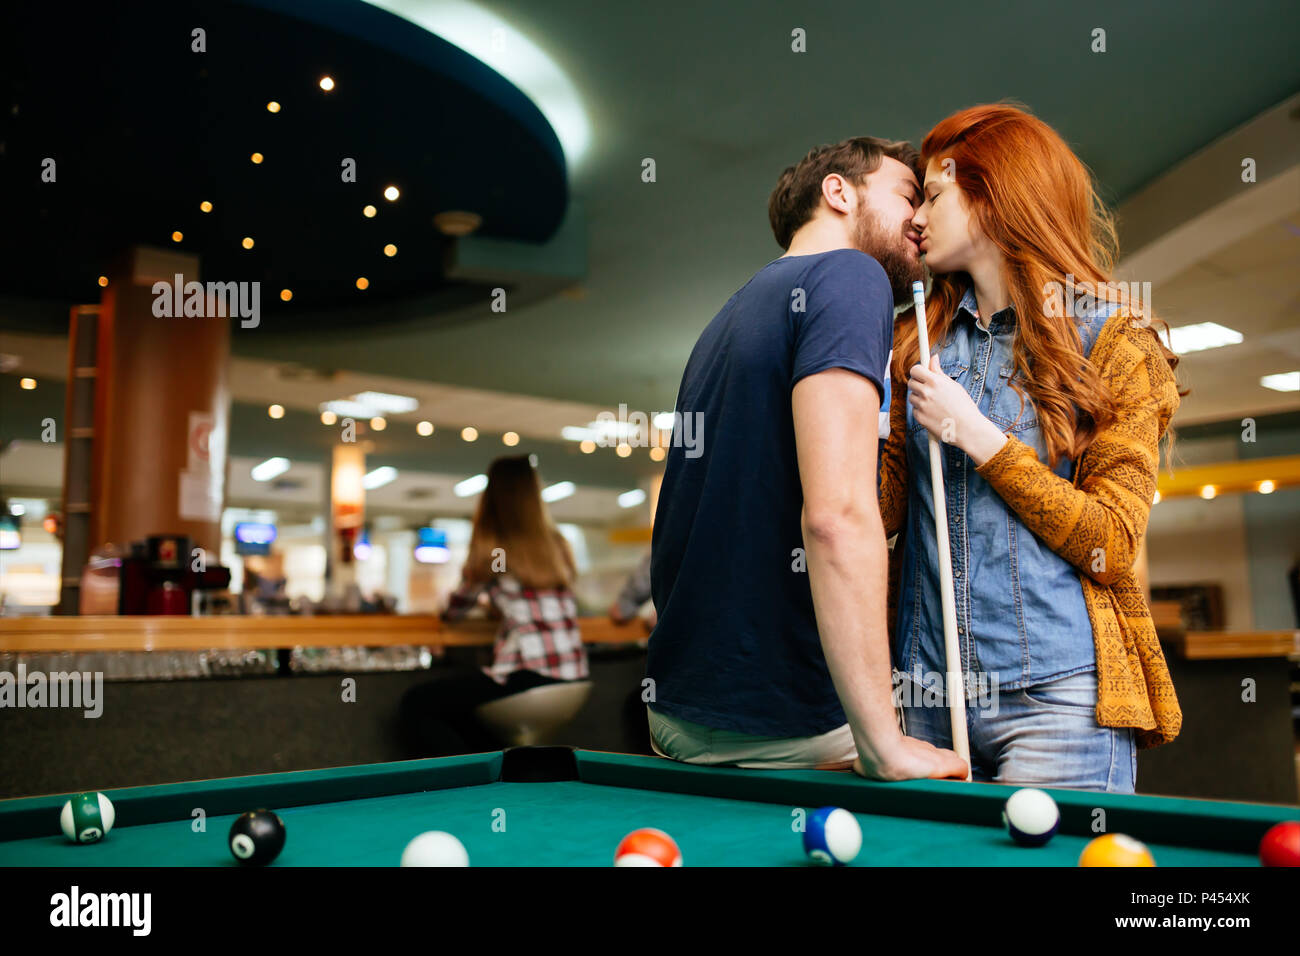 Beautiful couple kissing in billiards bar - Stock Image